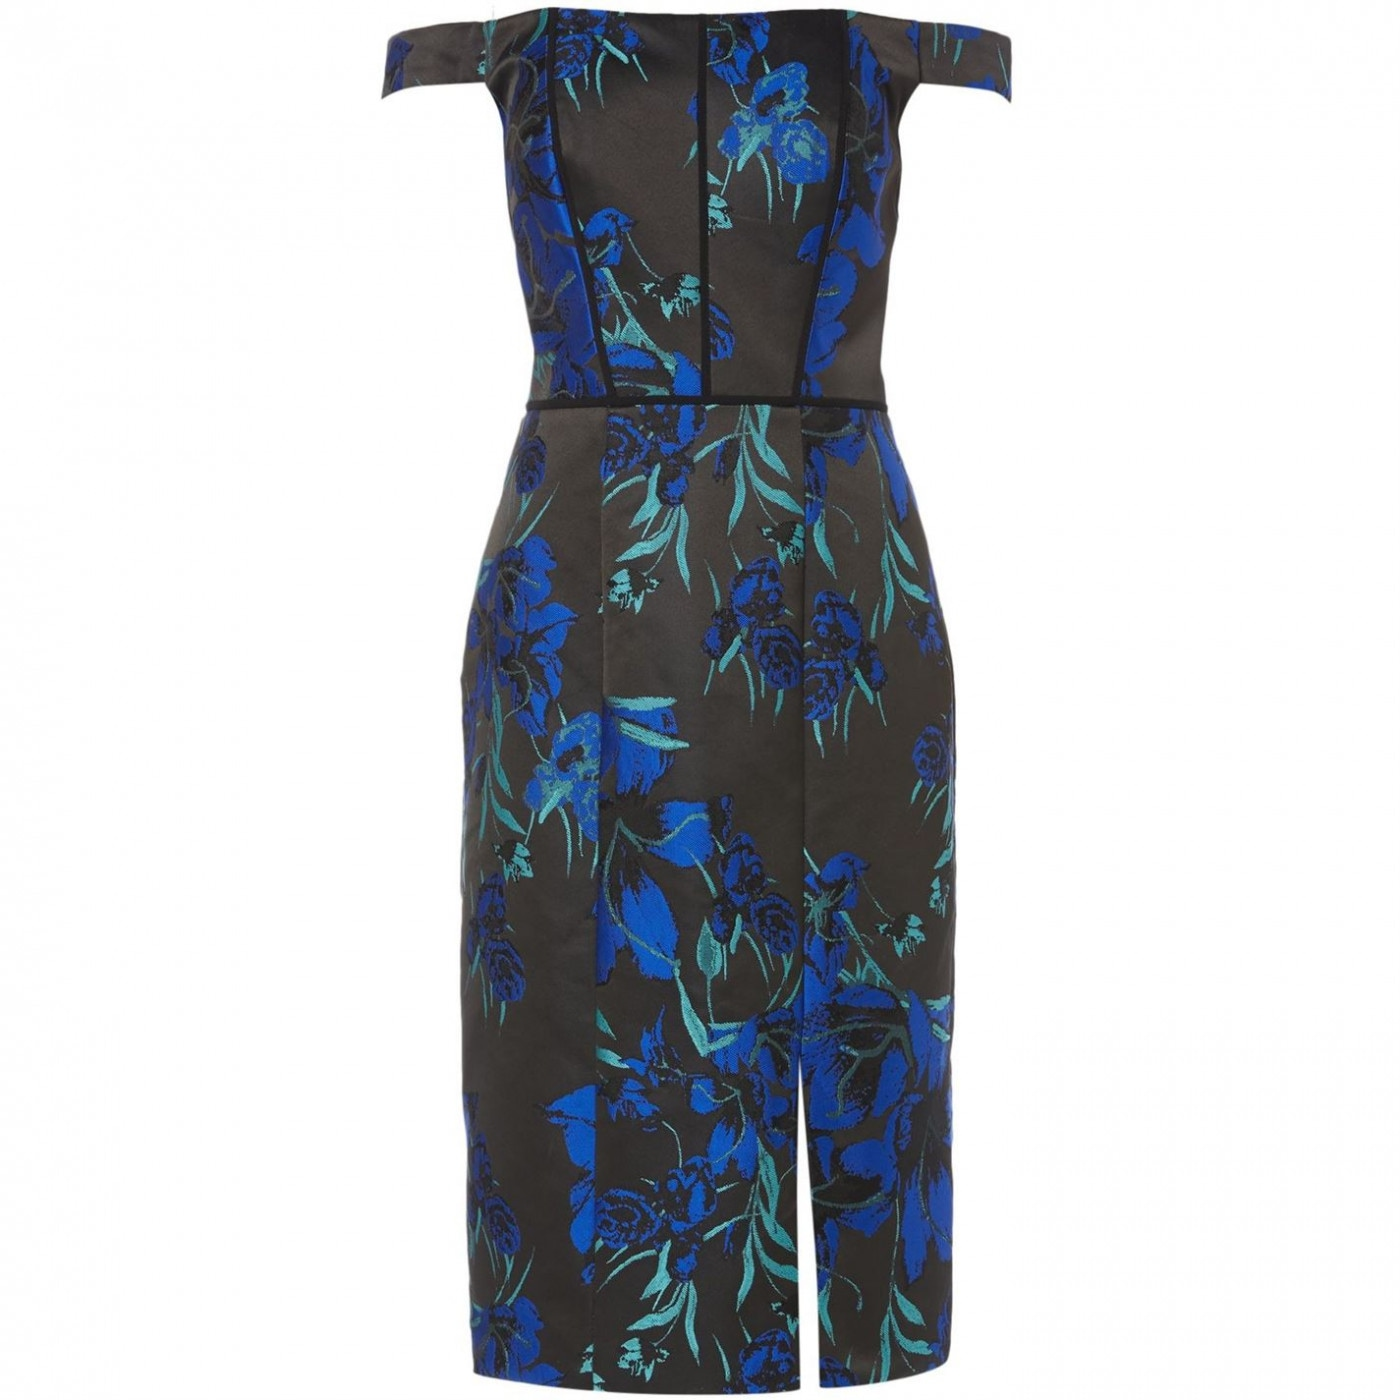 JS Collections Midi shift dress with tropical floral print